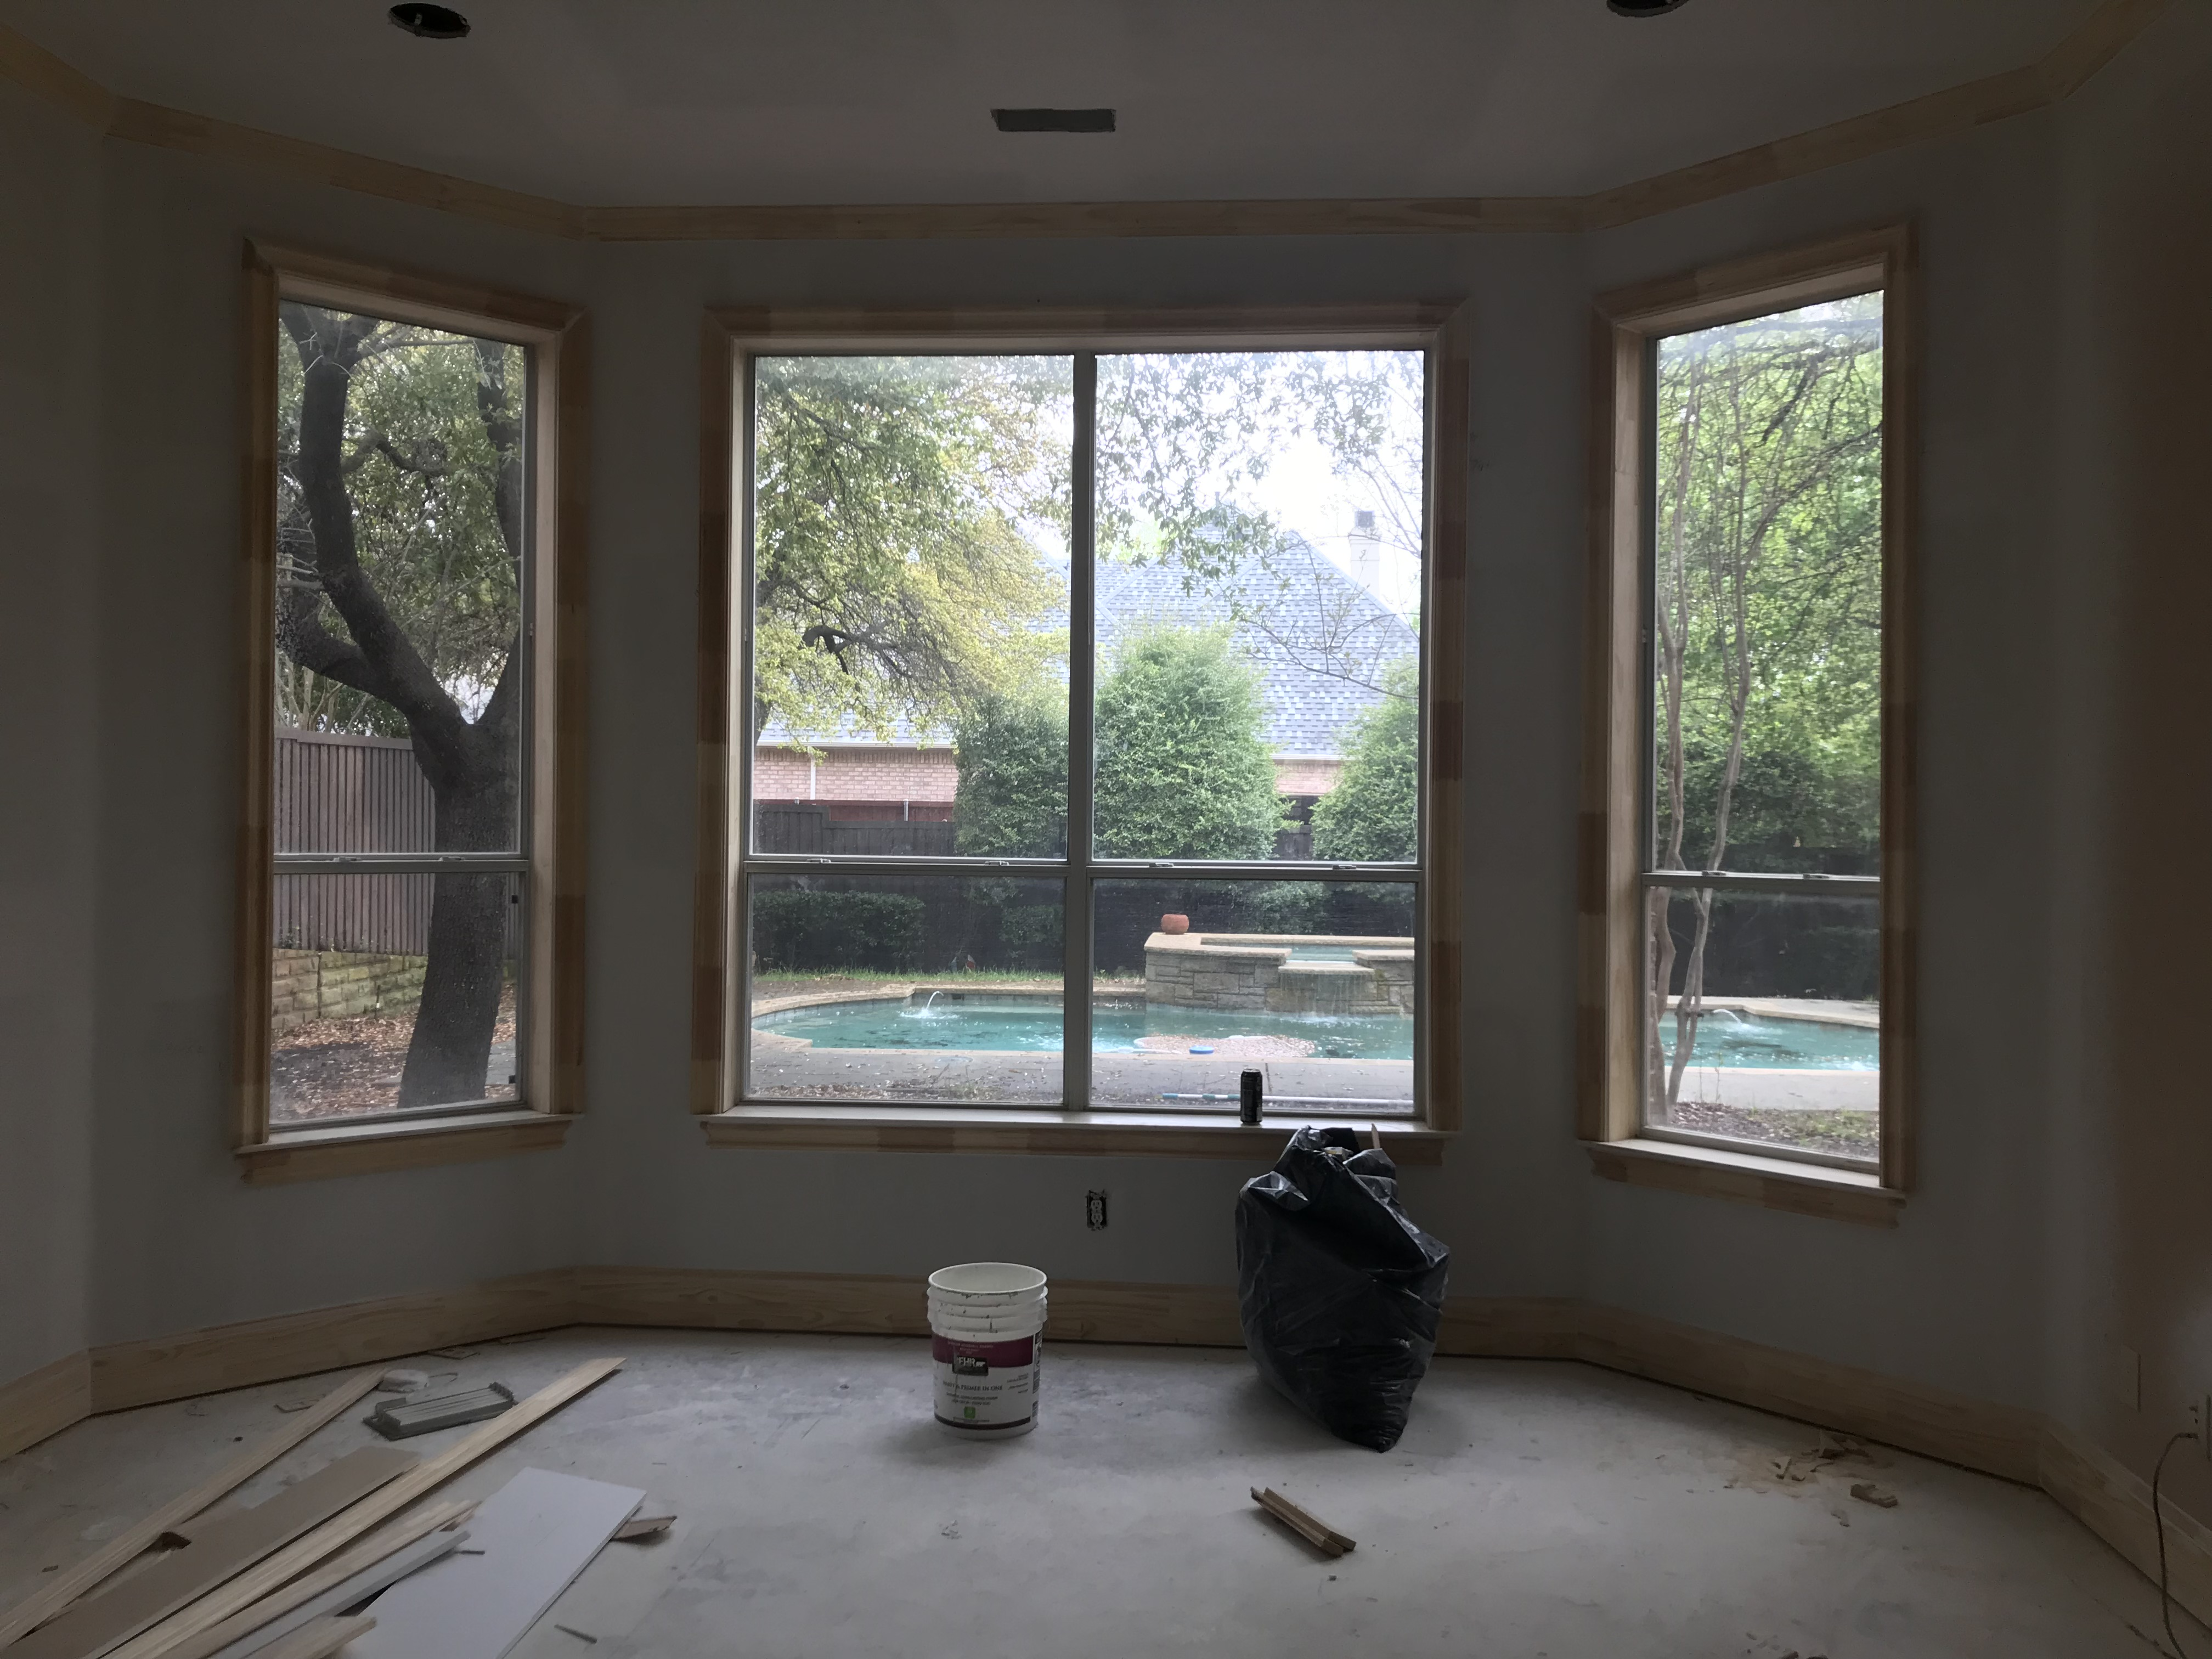 Water Damage Projects Trident General Contracting Llc